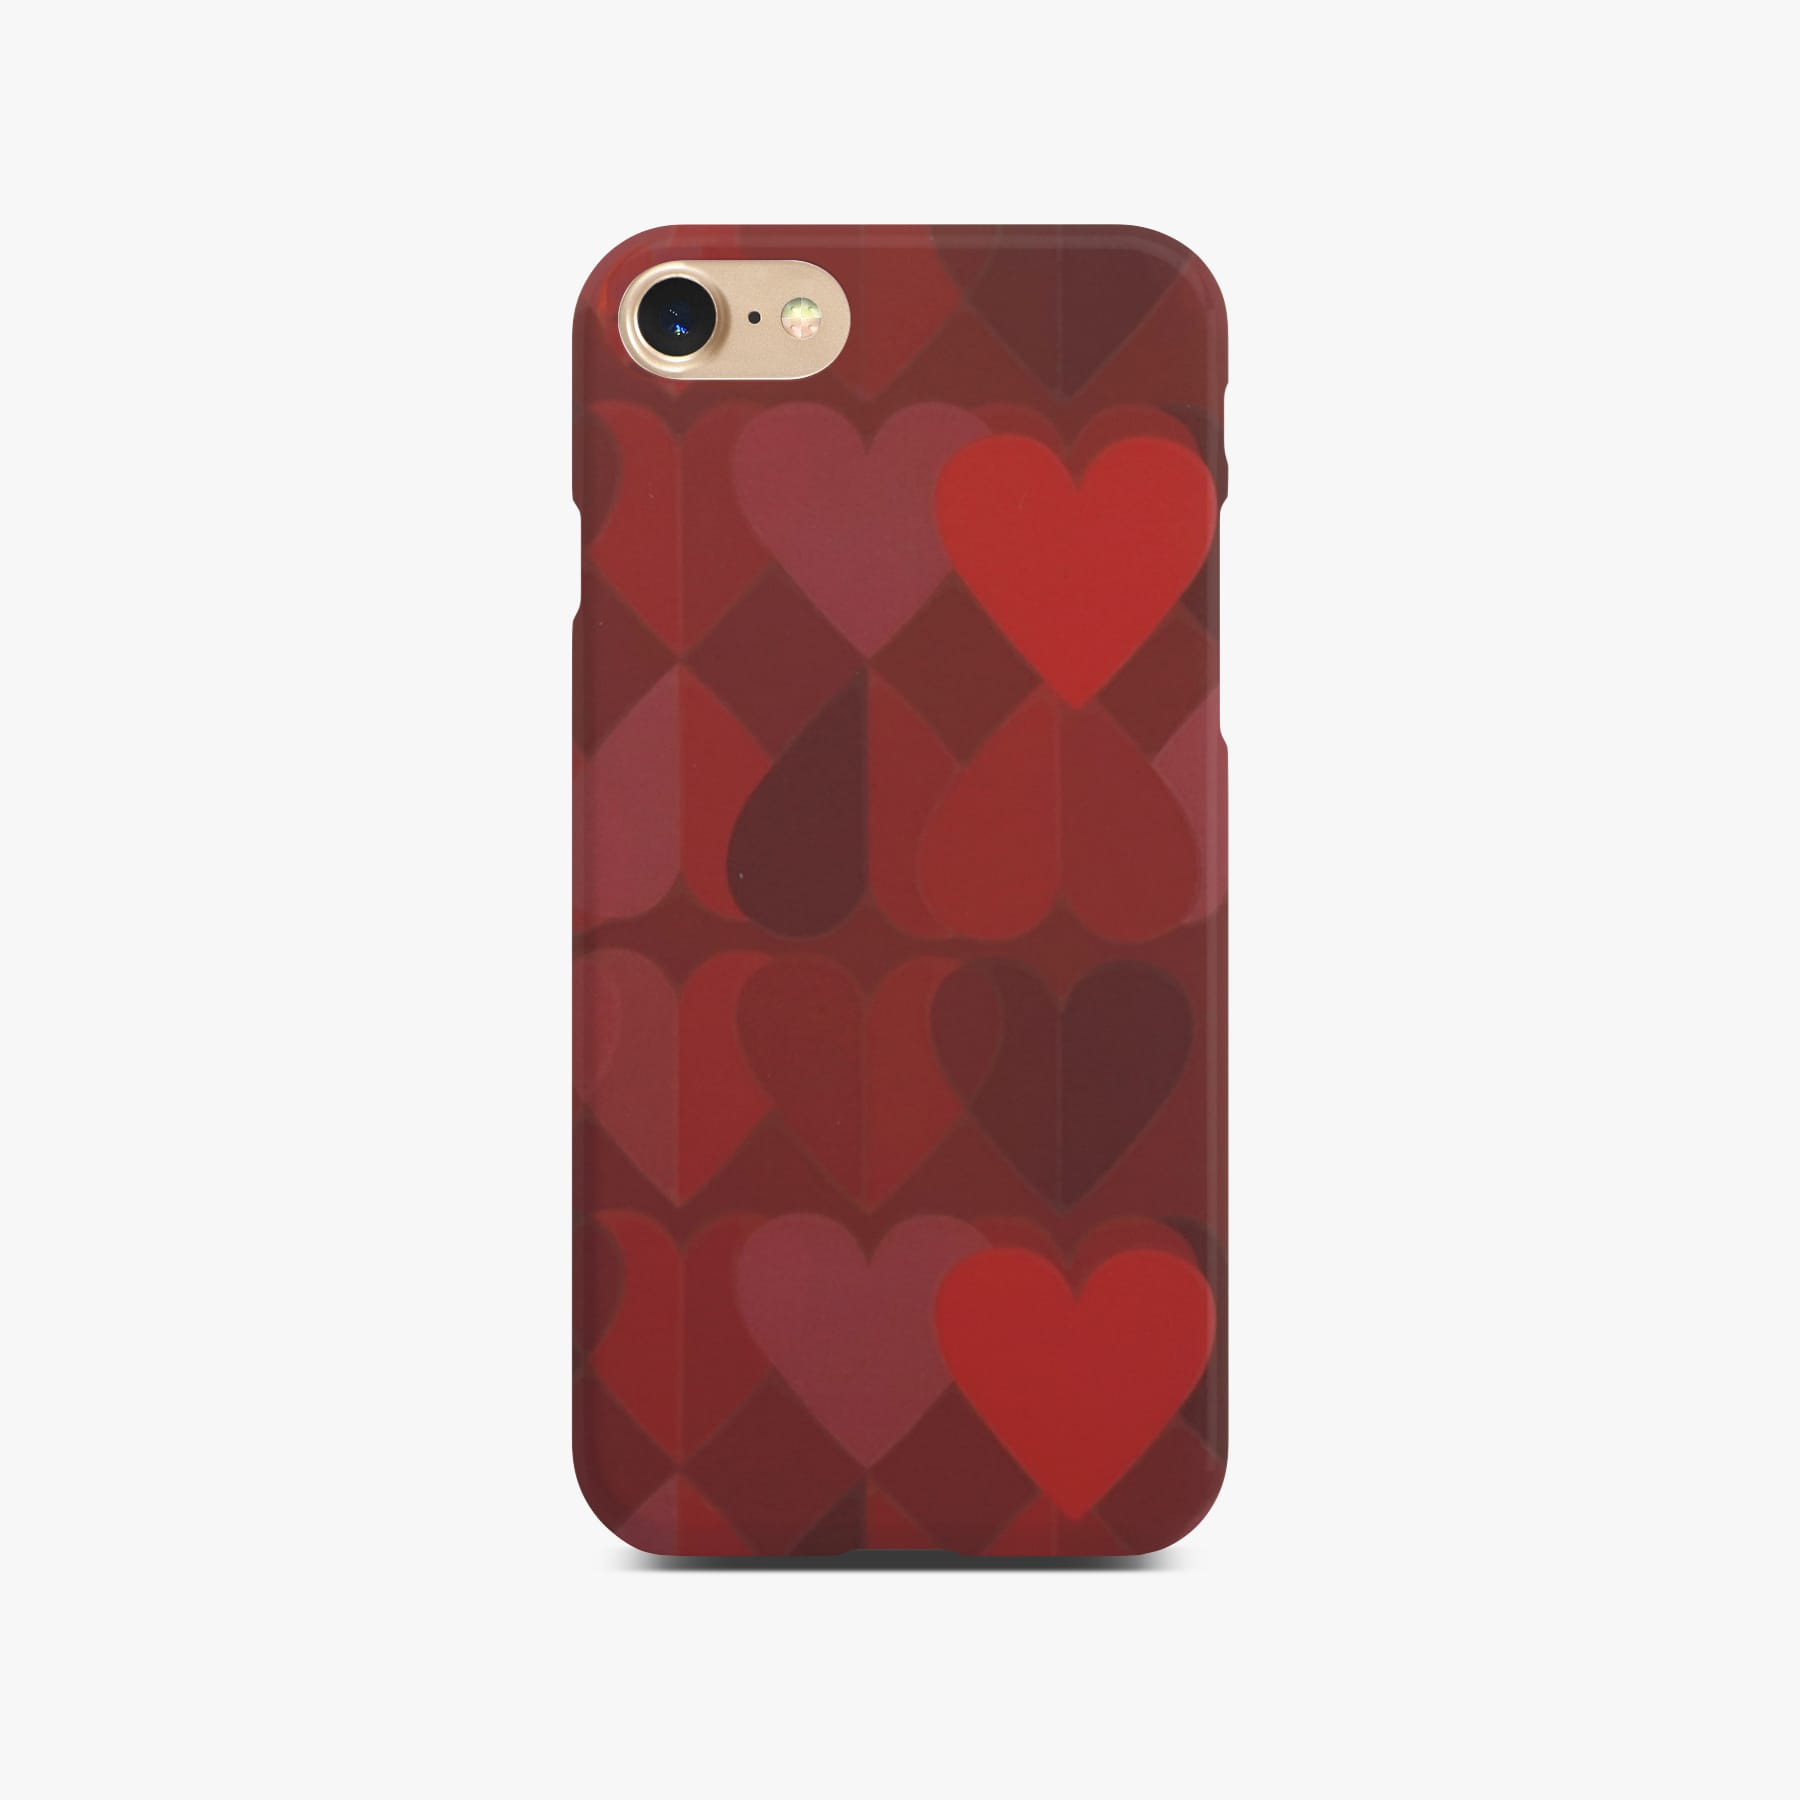 Red Heart Case on Gold iPhone 8